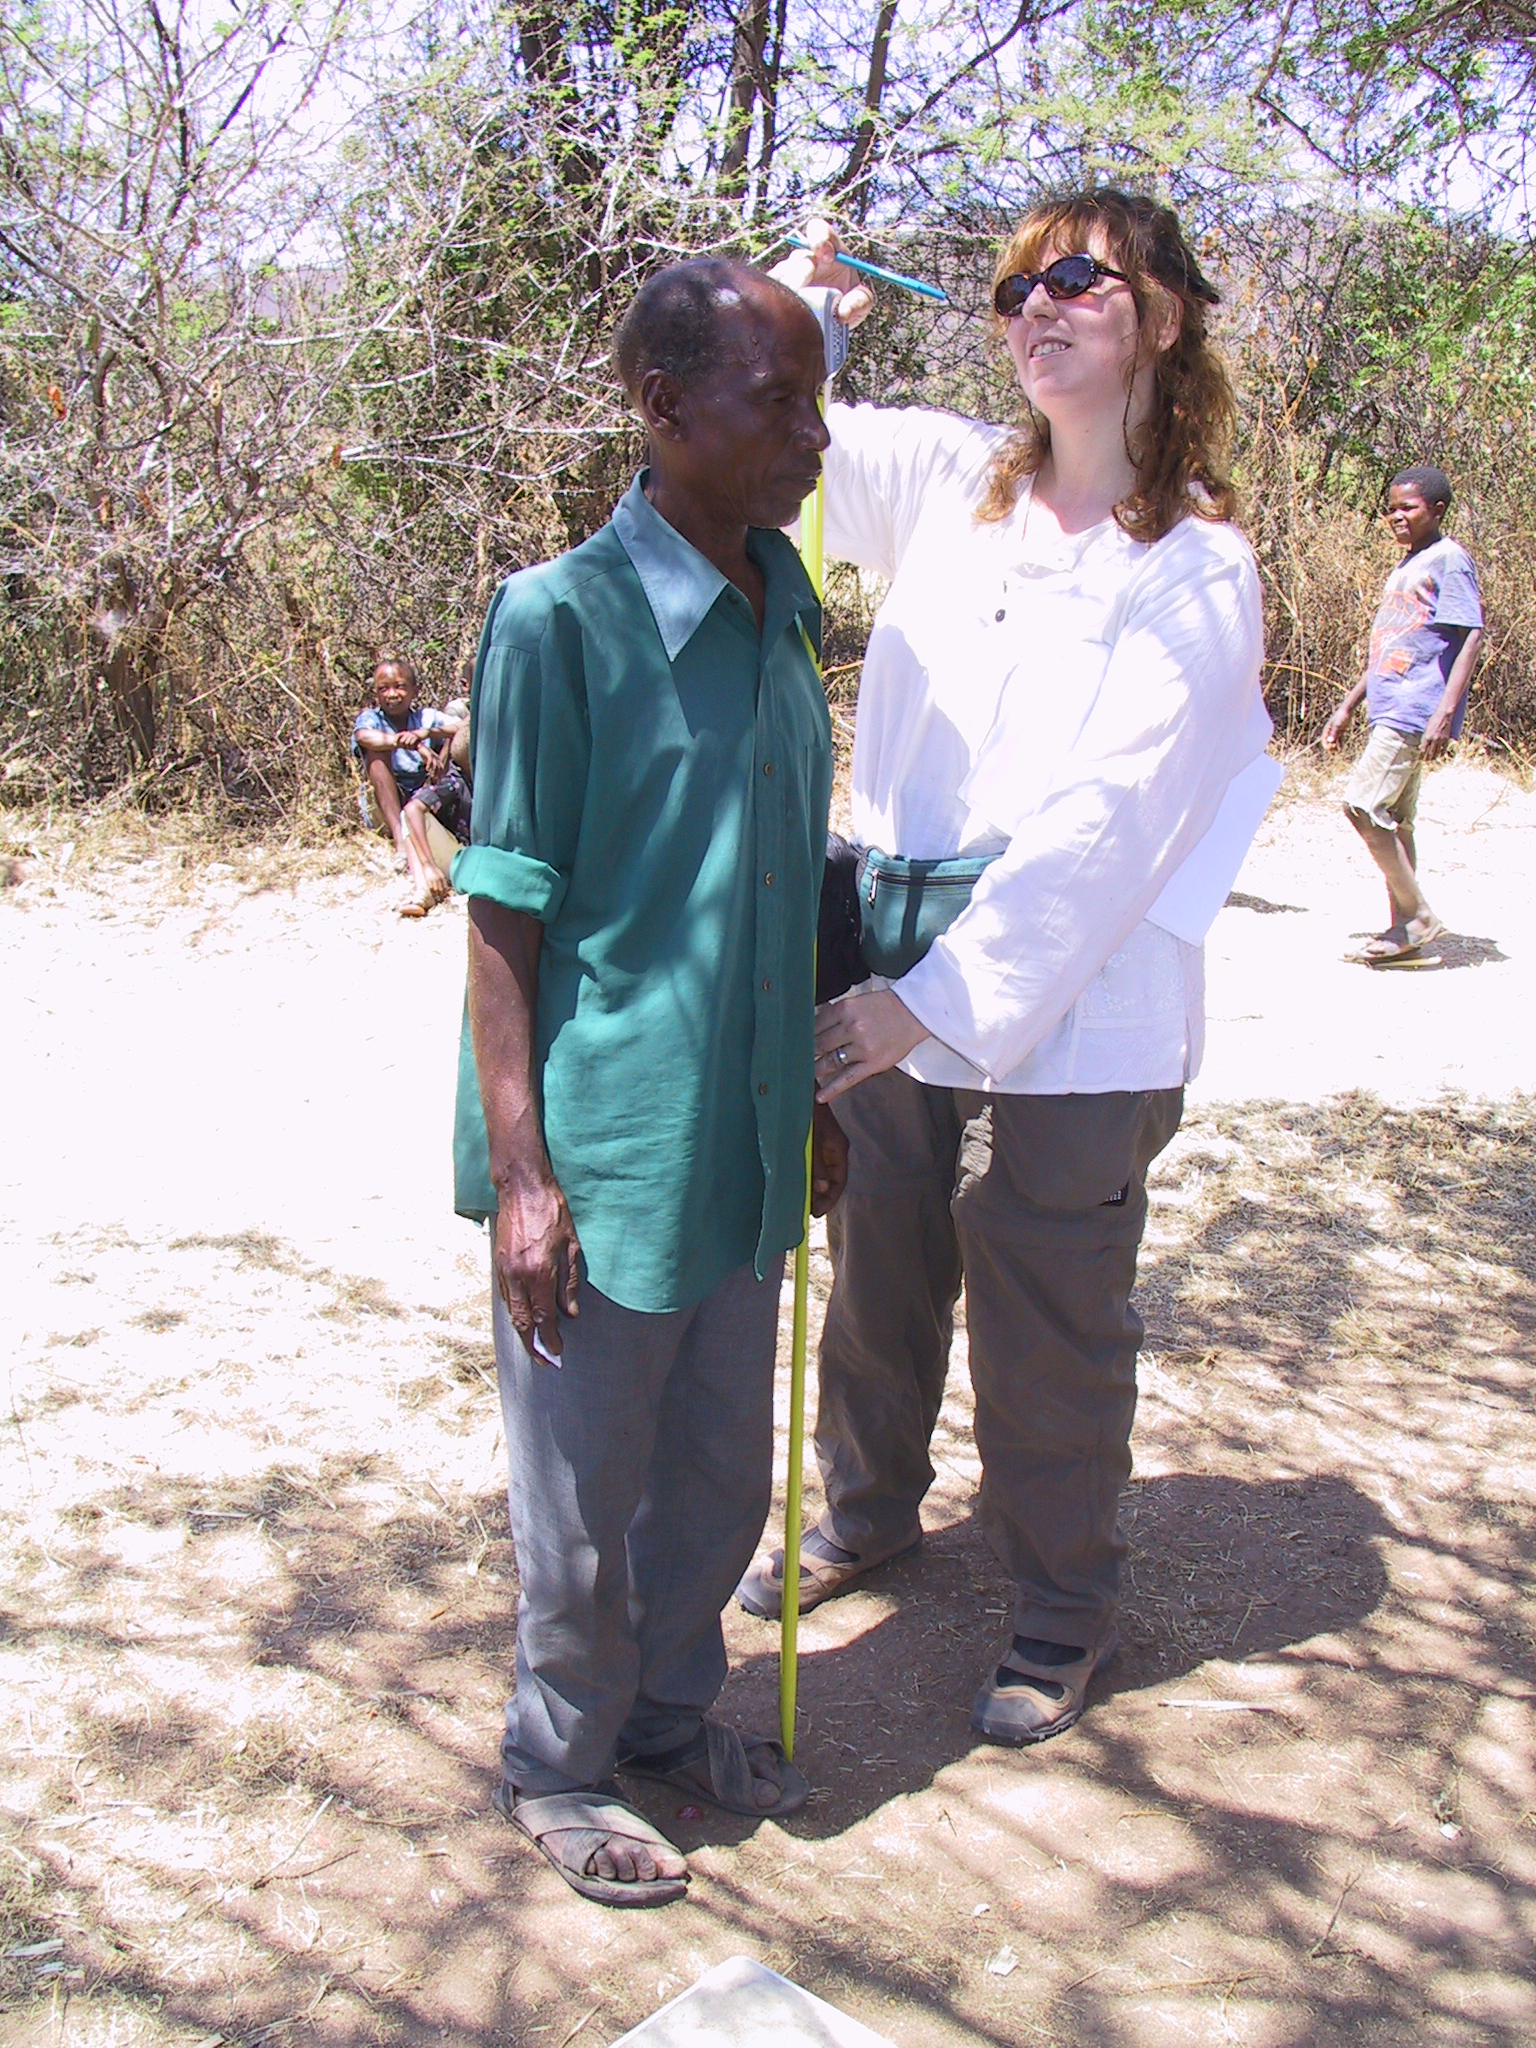 Sarah Tishkoff measures the height of a Sandawe man.